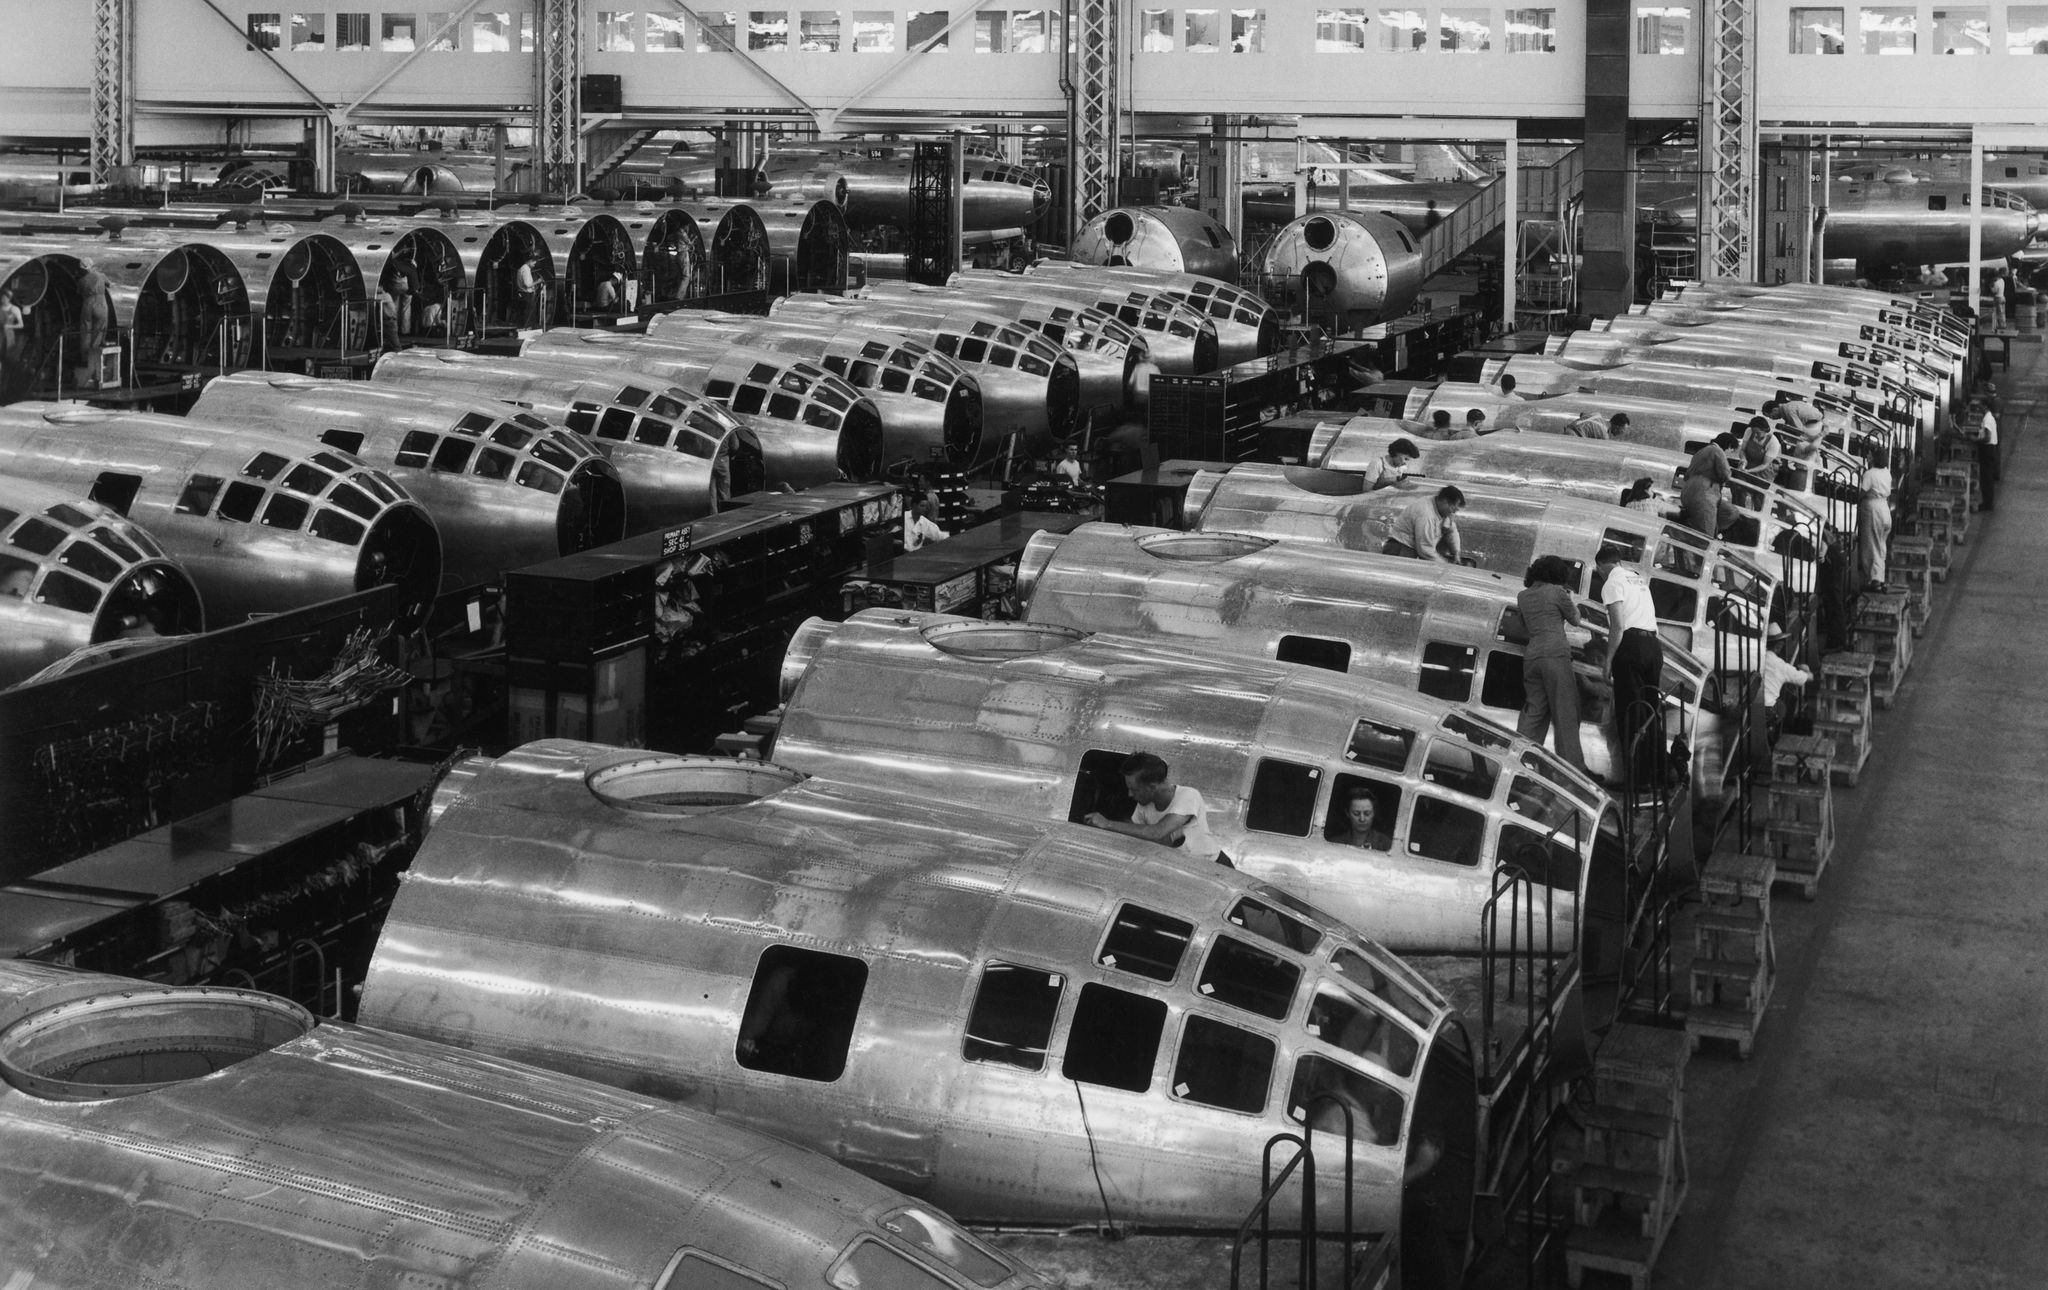 the-nose-sections-of-american-b-29-superfortress-bombers-news-photo-1591655851.jpg